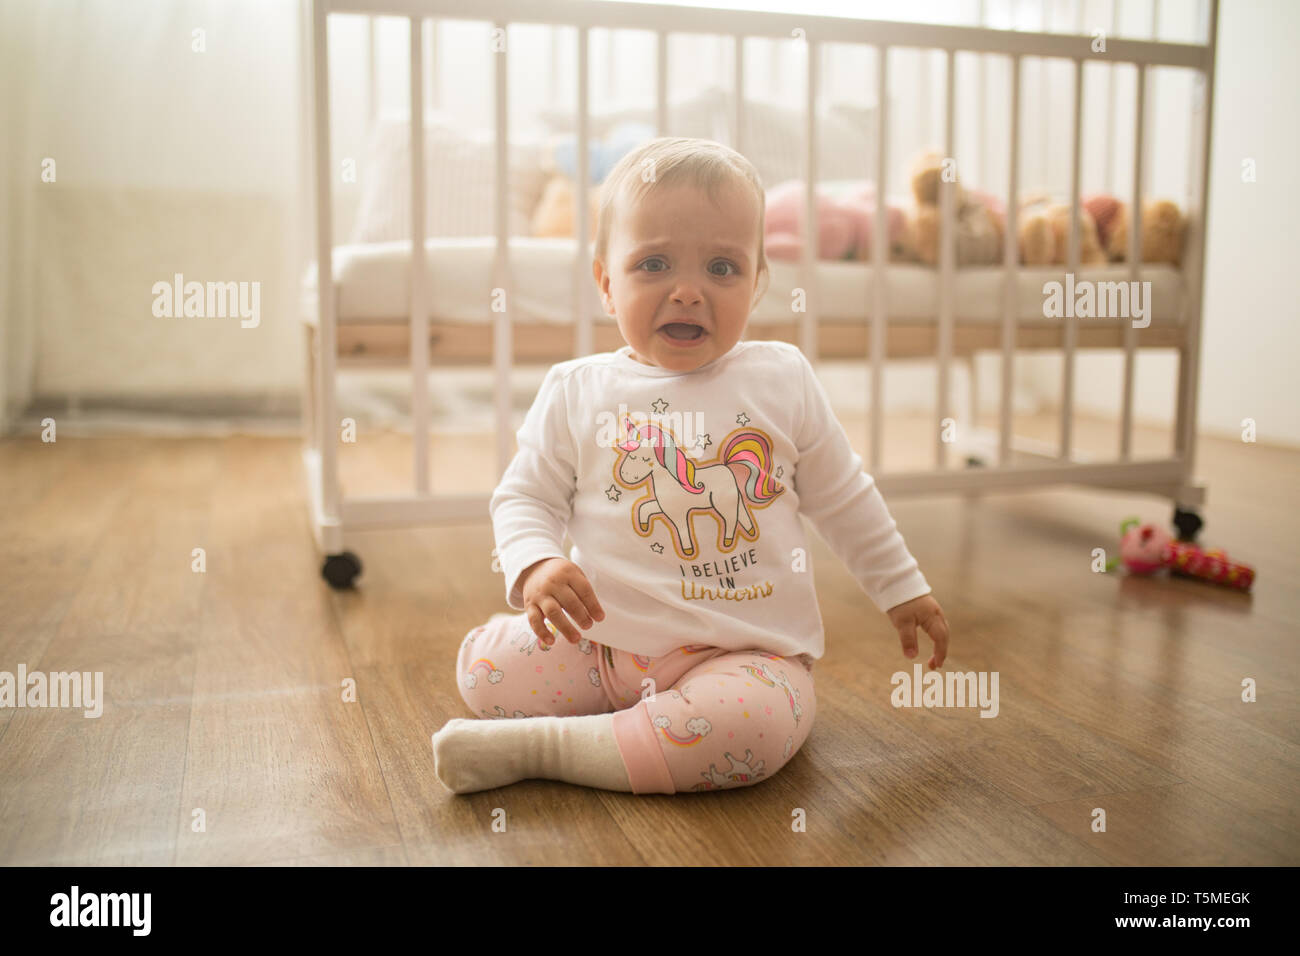 A sad toddler sits on the floor and cries against background of the crib. - Stock Image